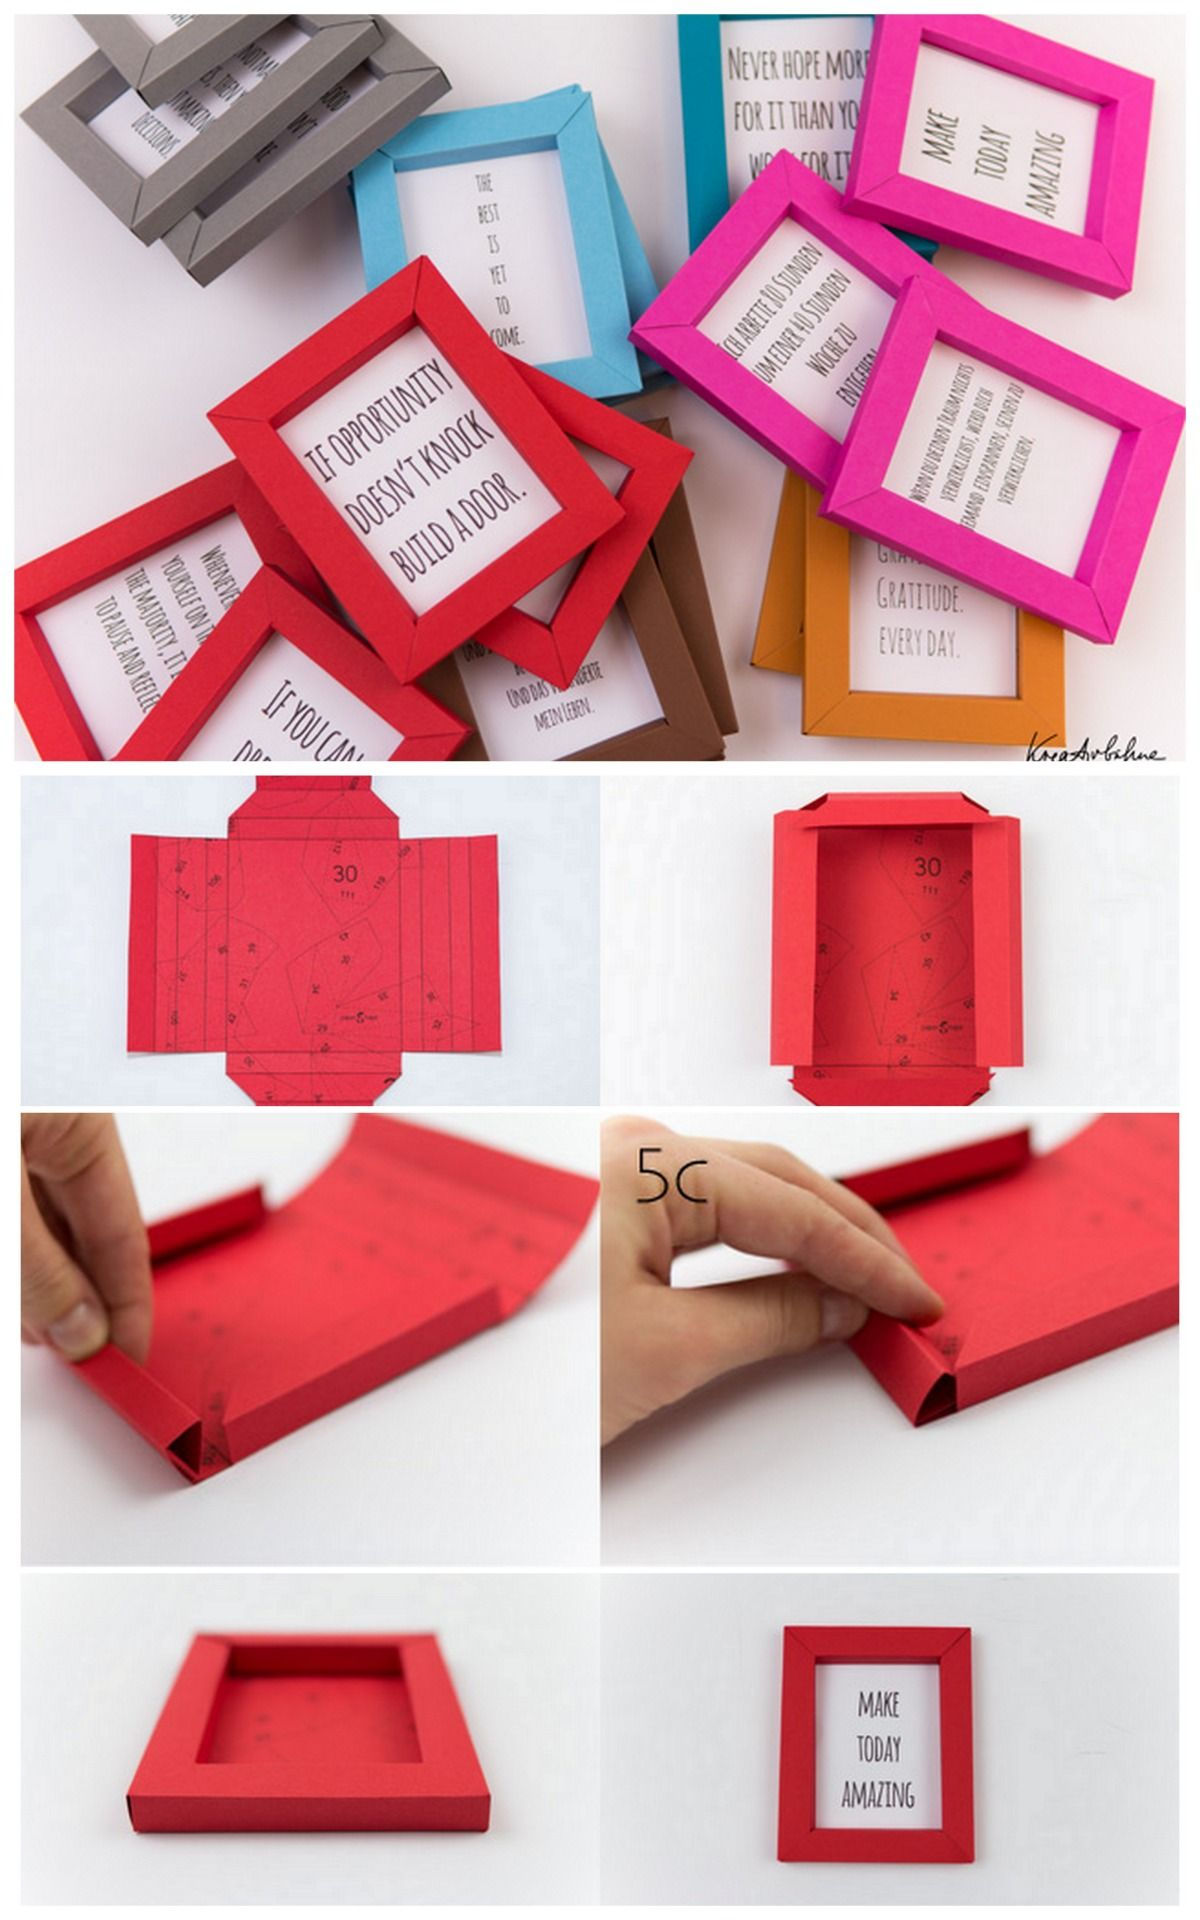 Diy Paper Frame Tutorial And Printable From Kreativbuehne These